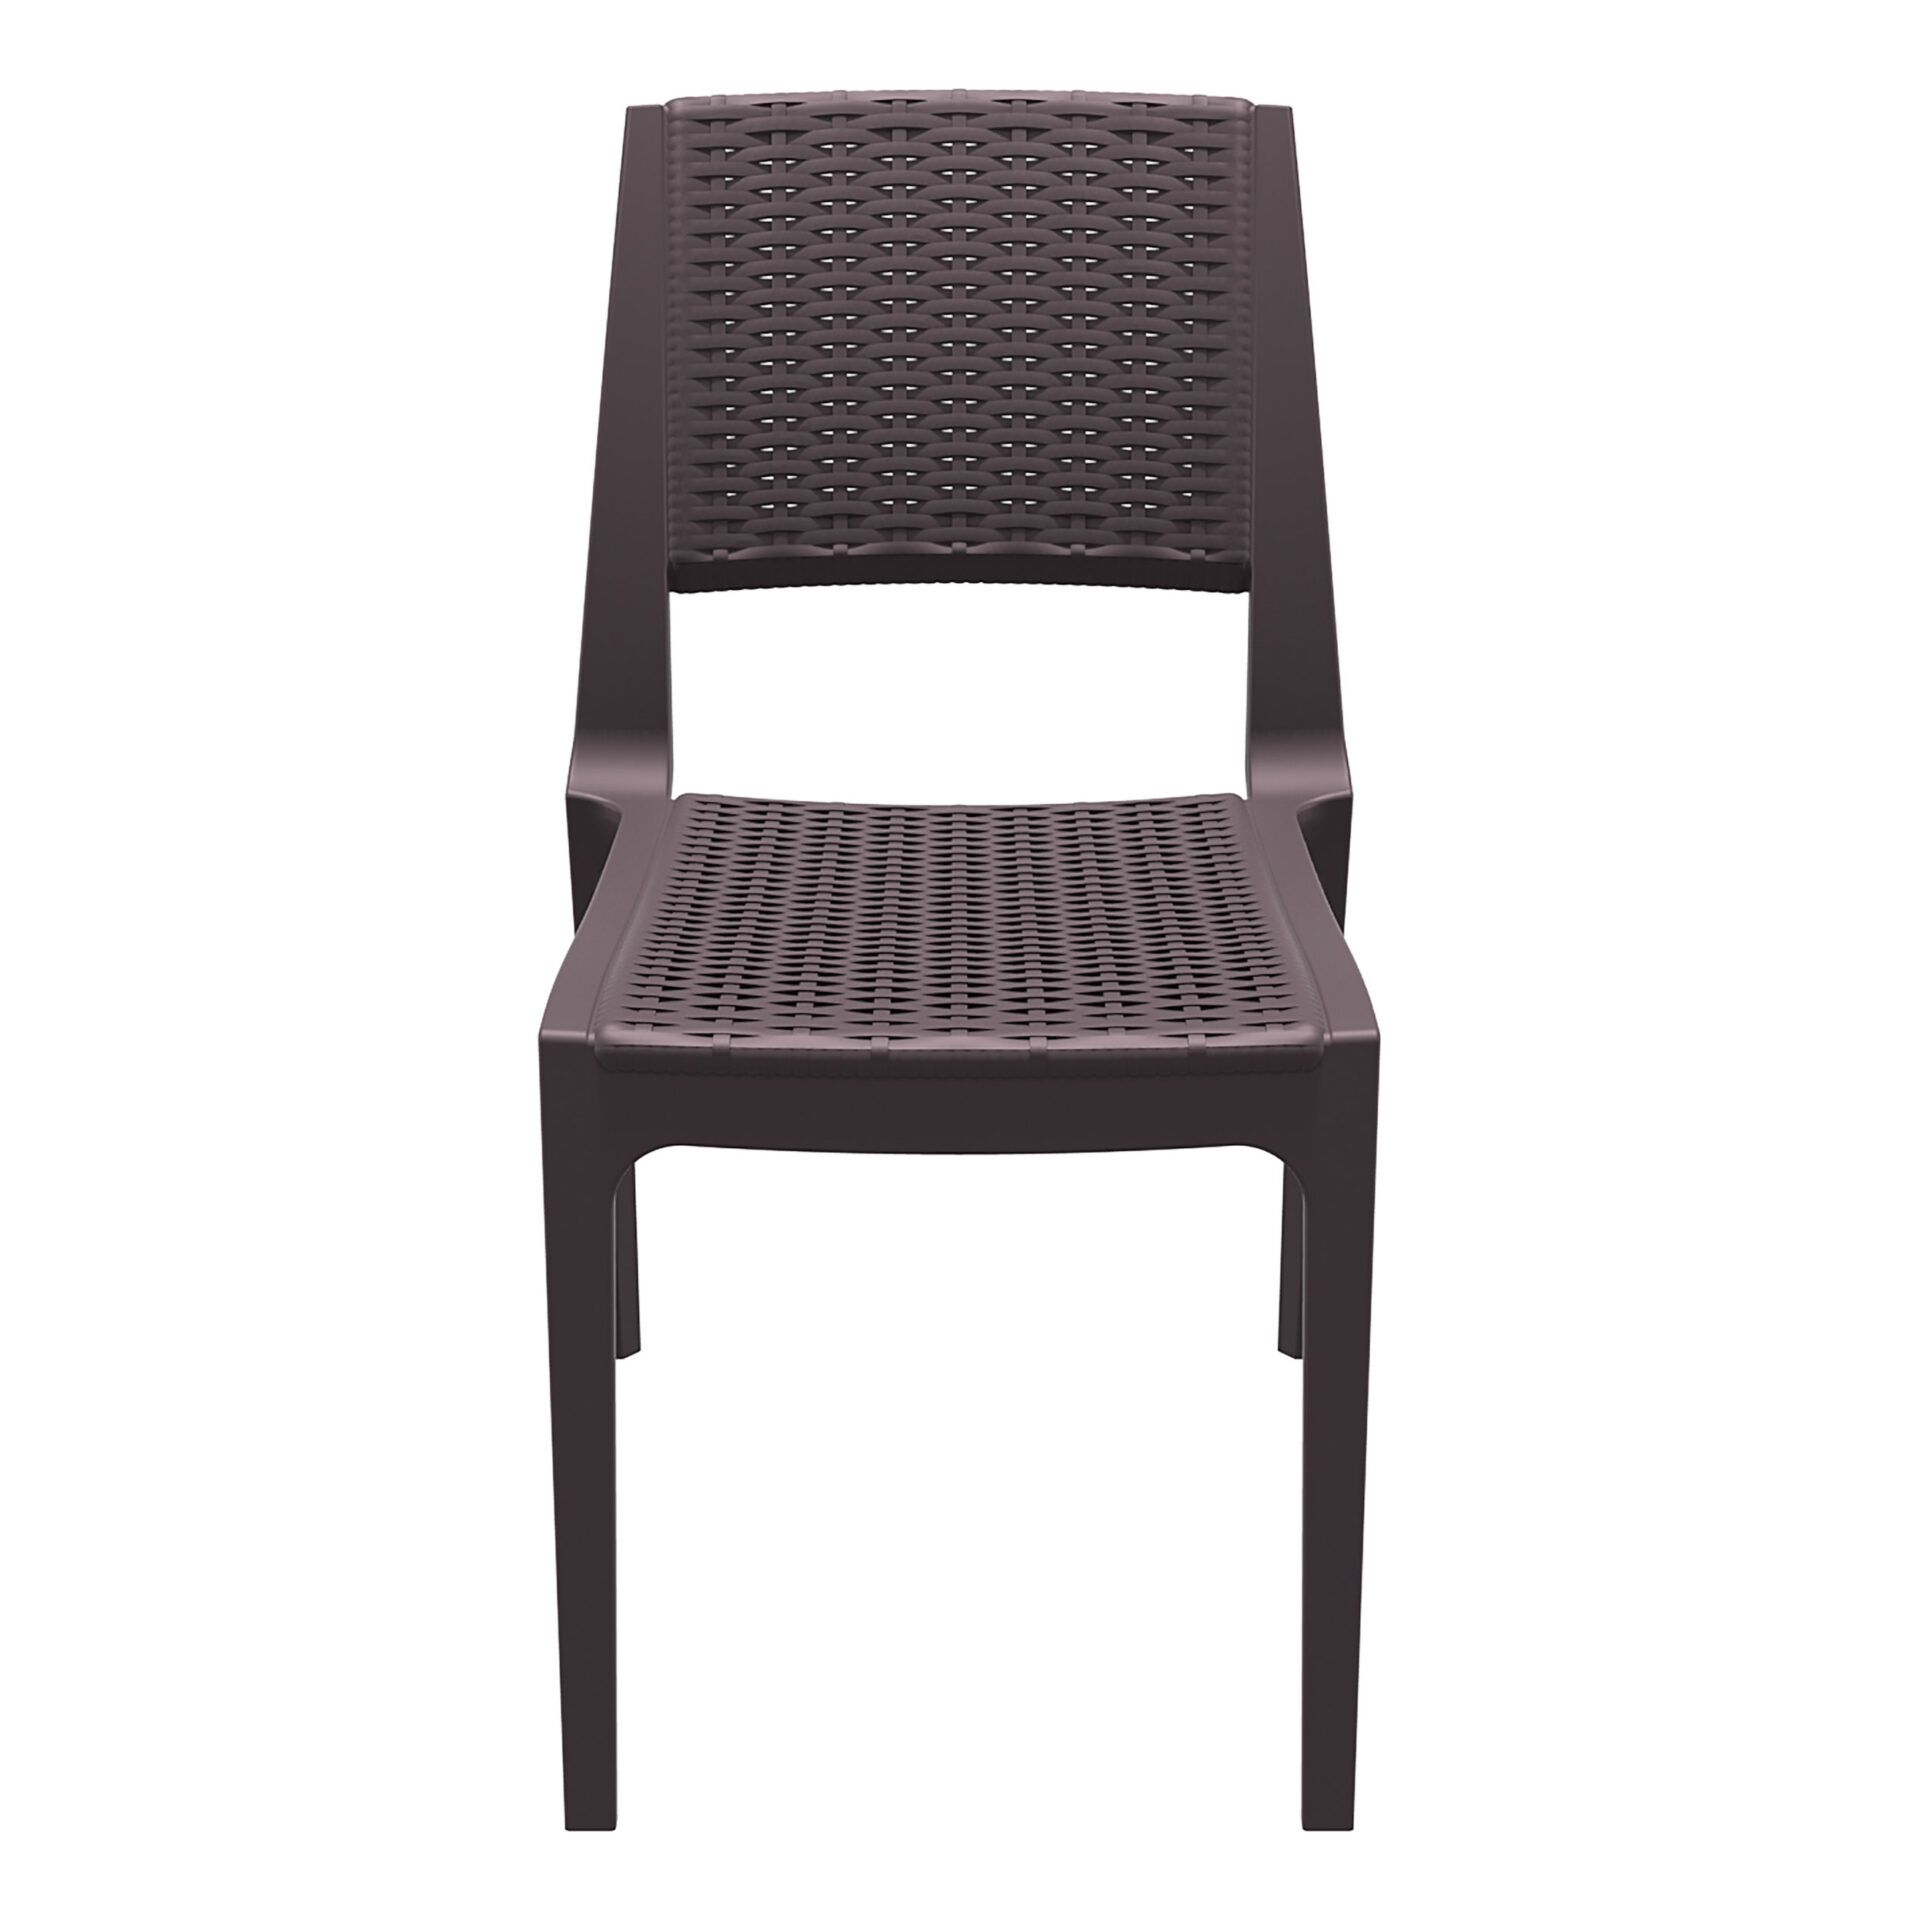 resin rattan outdoor cafe verona chair brown front